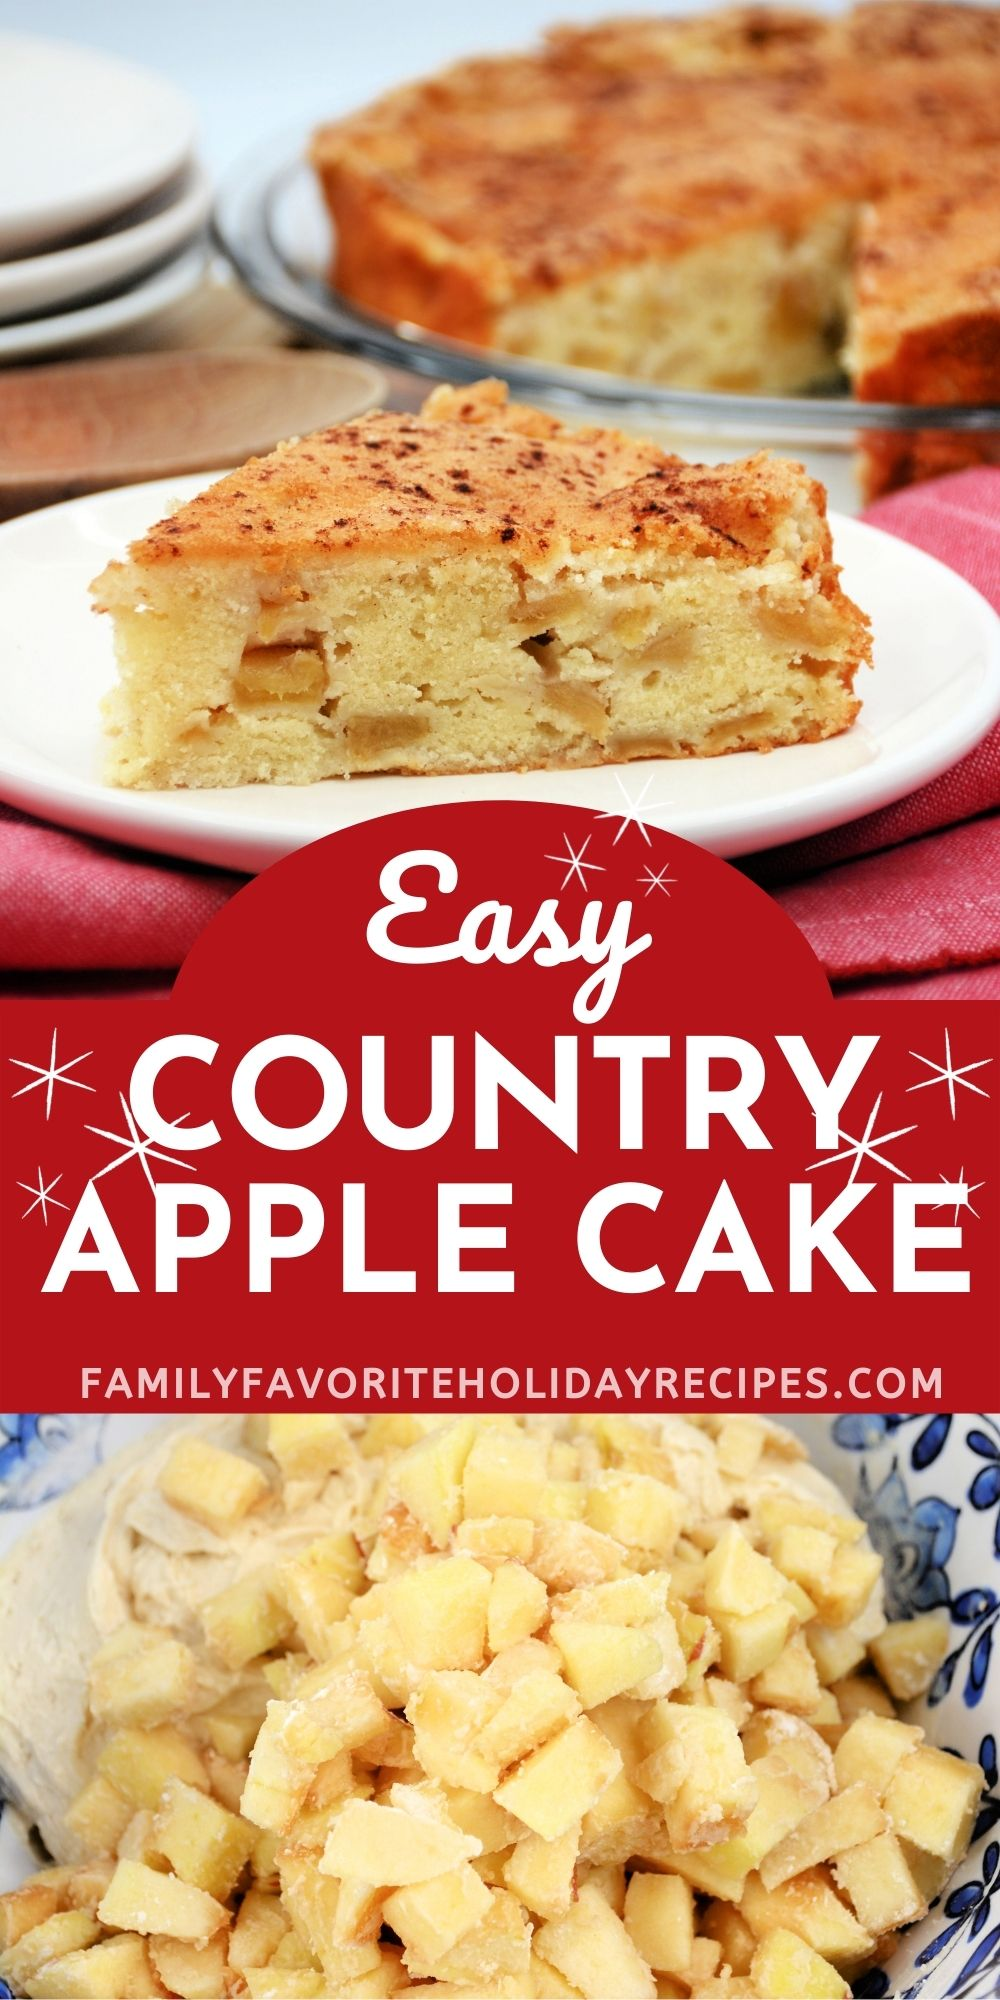 collage image featuring two photos, one of the country apple cake and one of the process image of preparing the batter